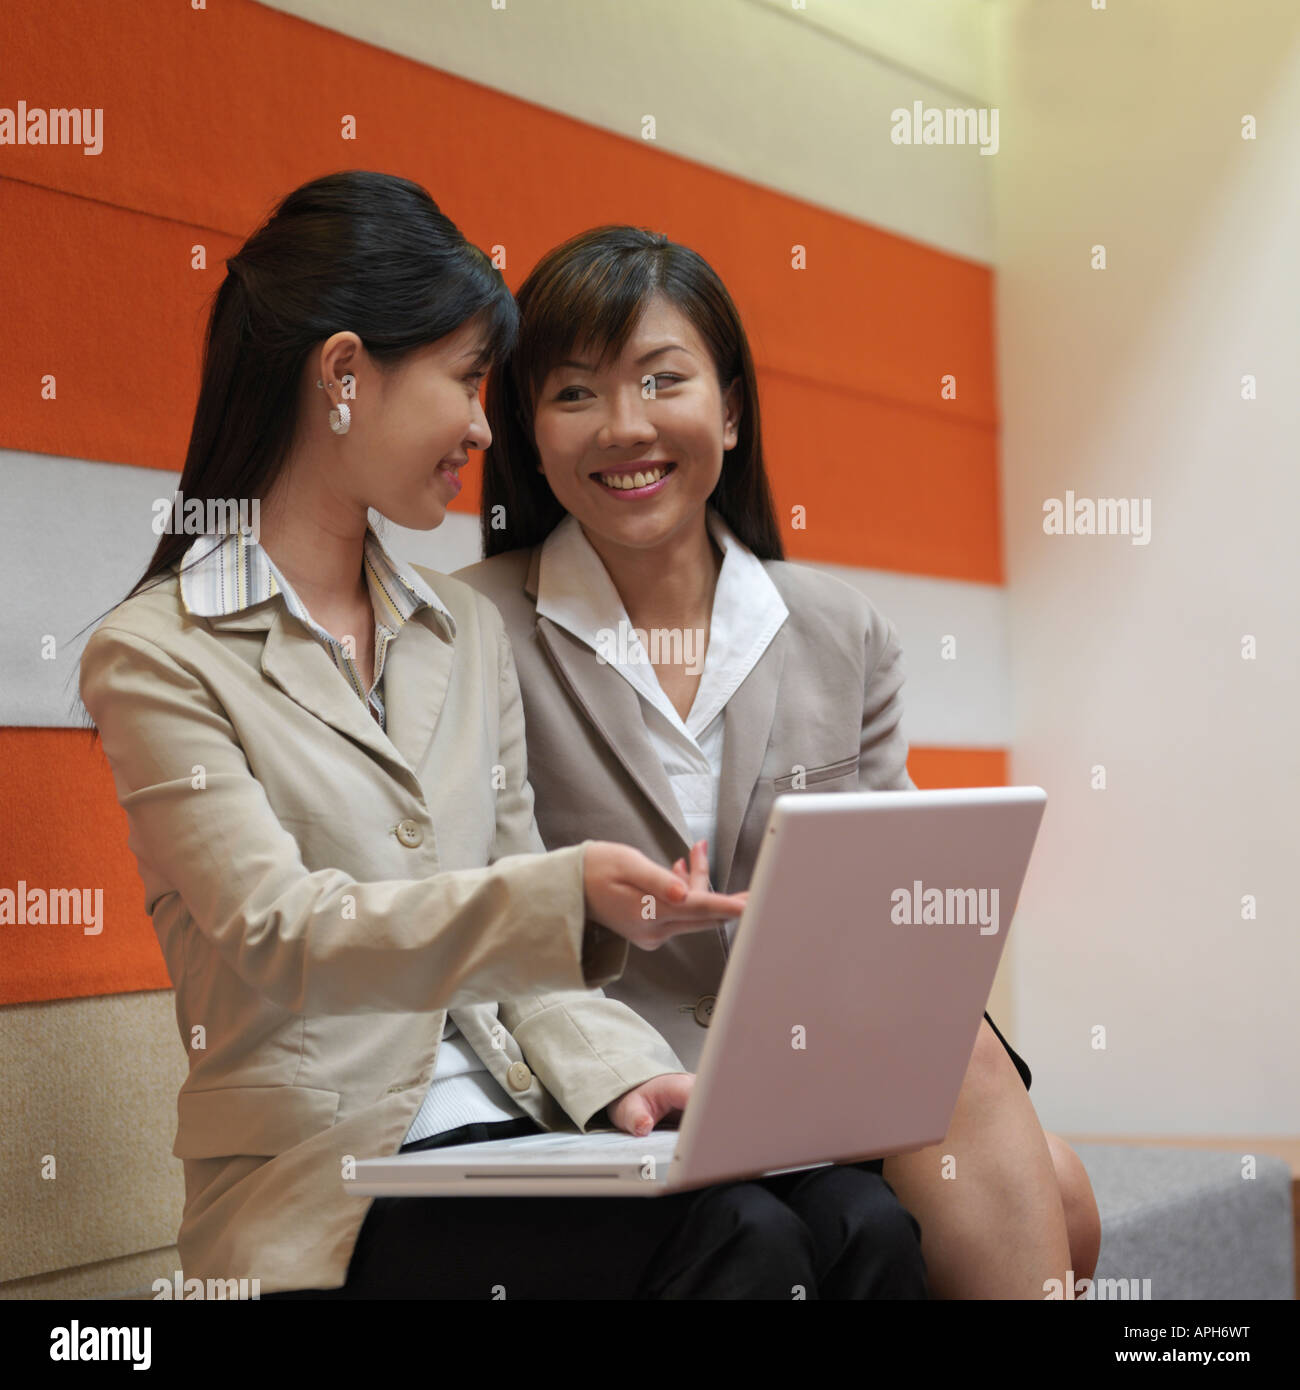 Two Businesswoman Looking at a Laptop - Stock Image